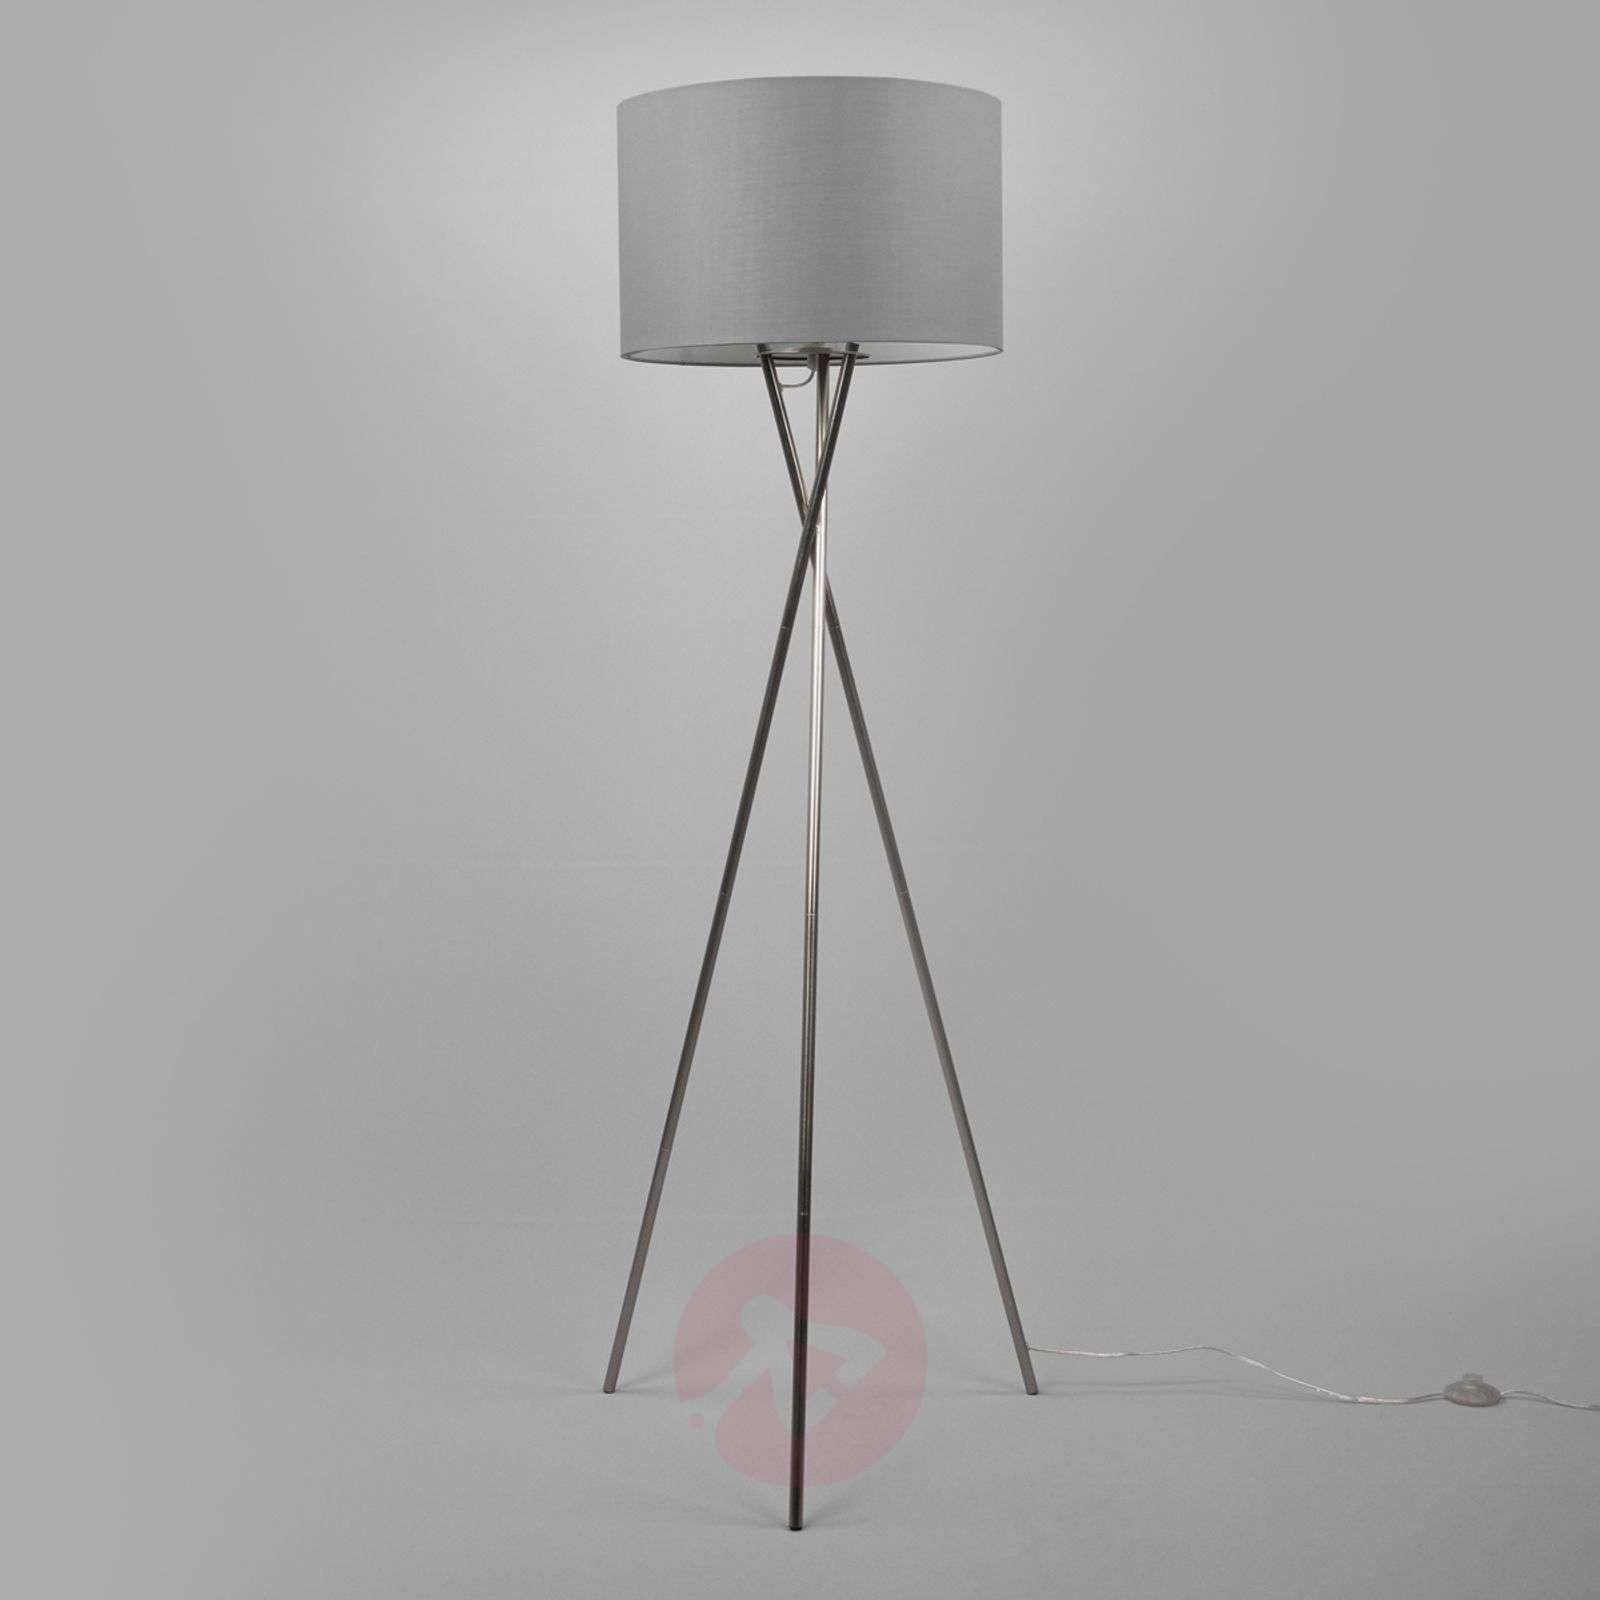 Tripod floor lamp with grey lampshade lights tripod floor lamp with grey lampshade 4018036 02 aloadofball Gallery